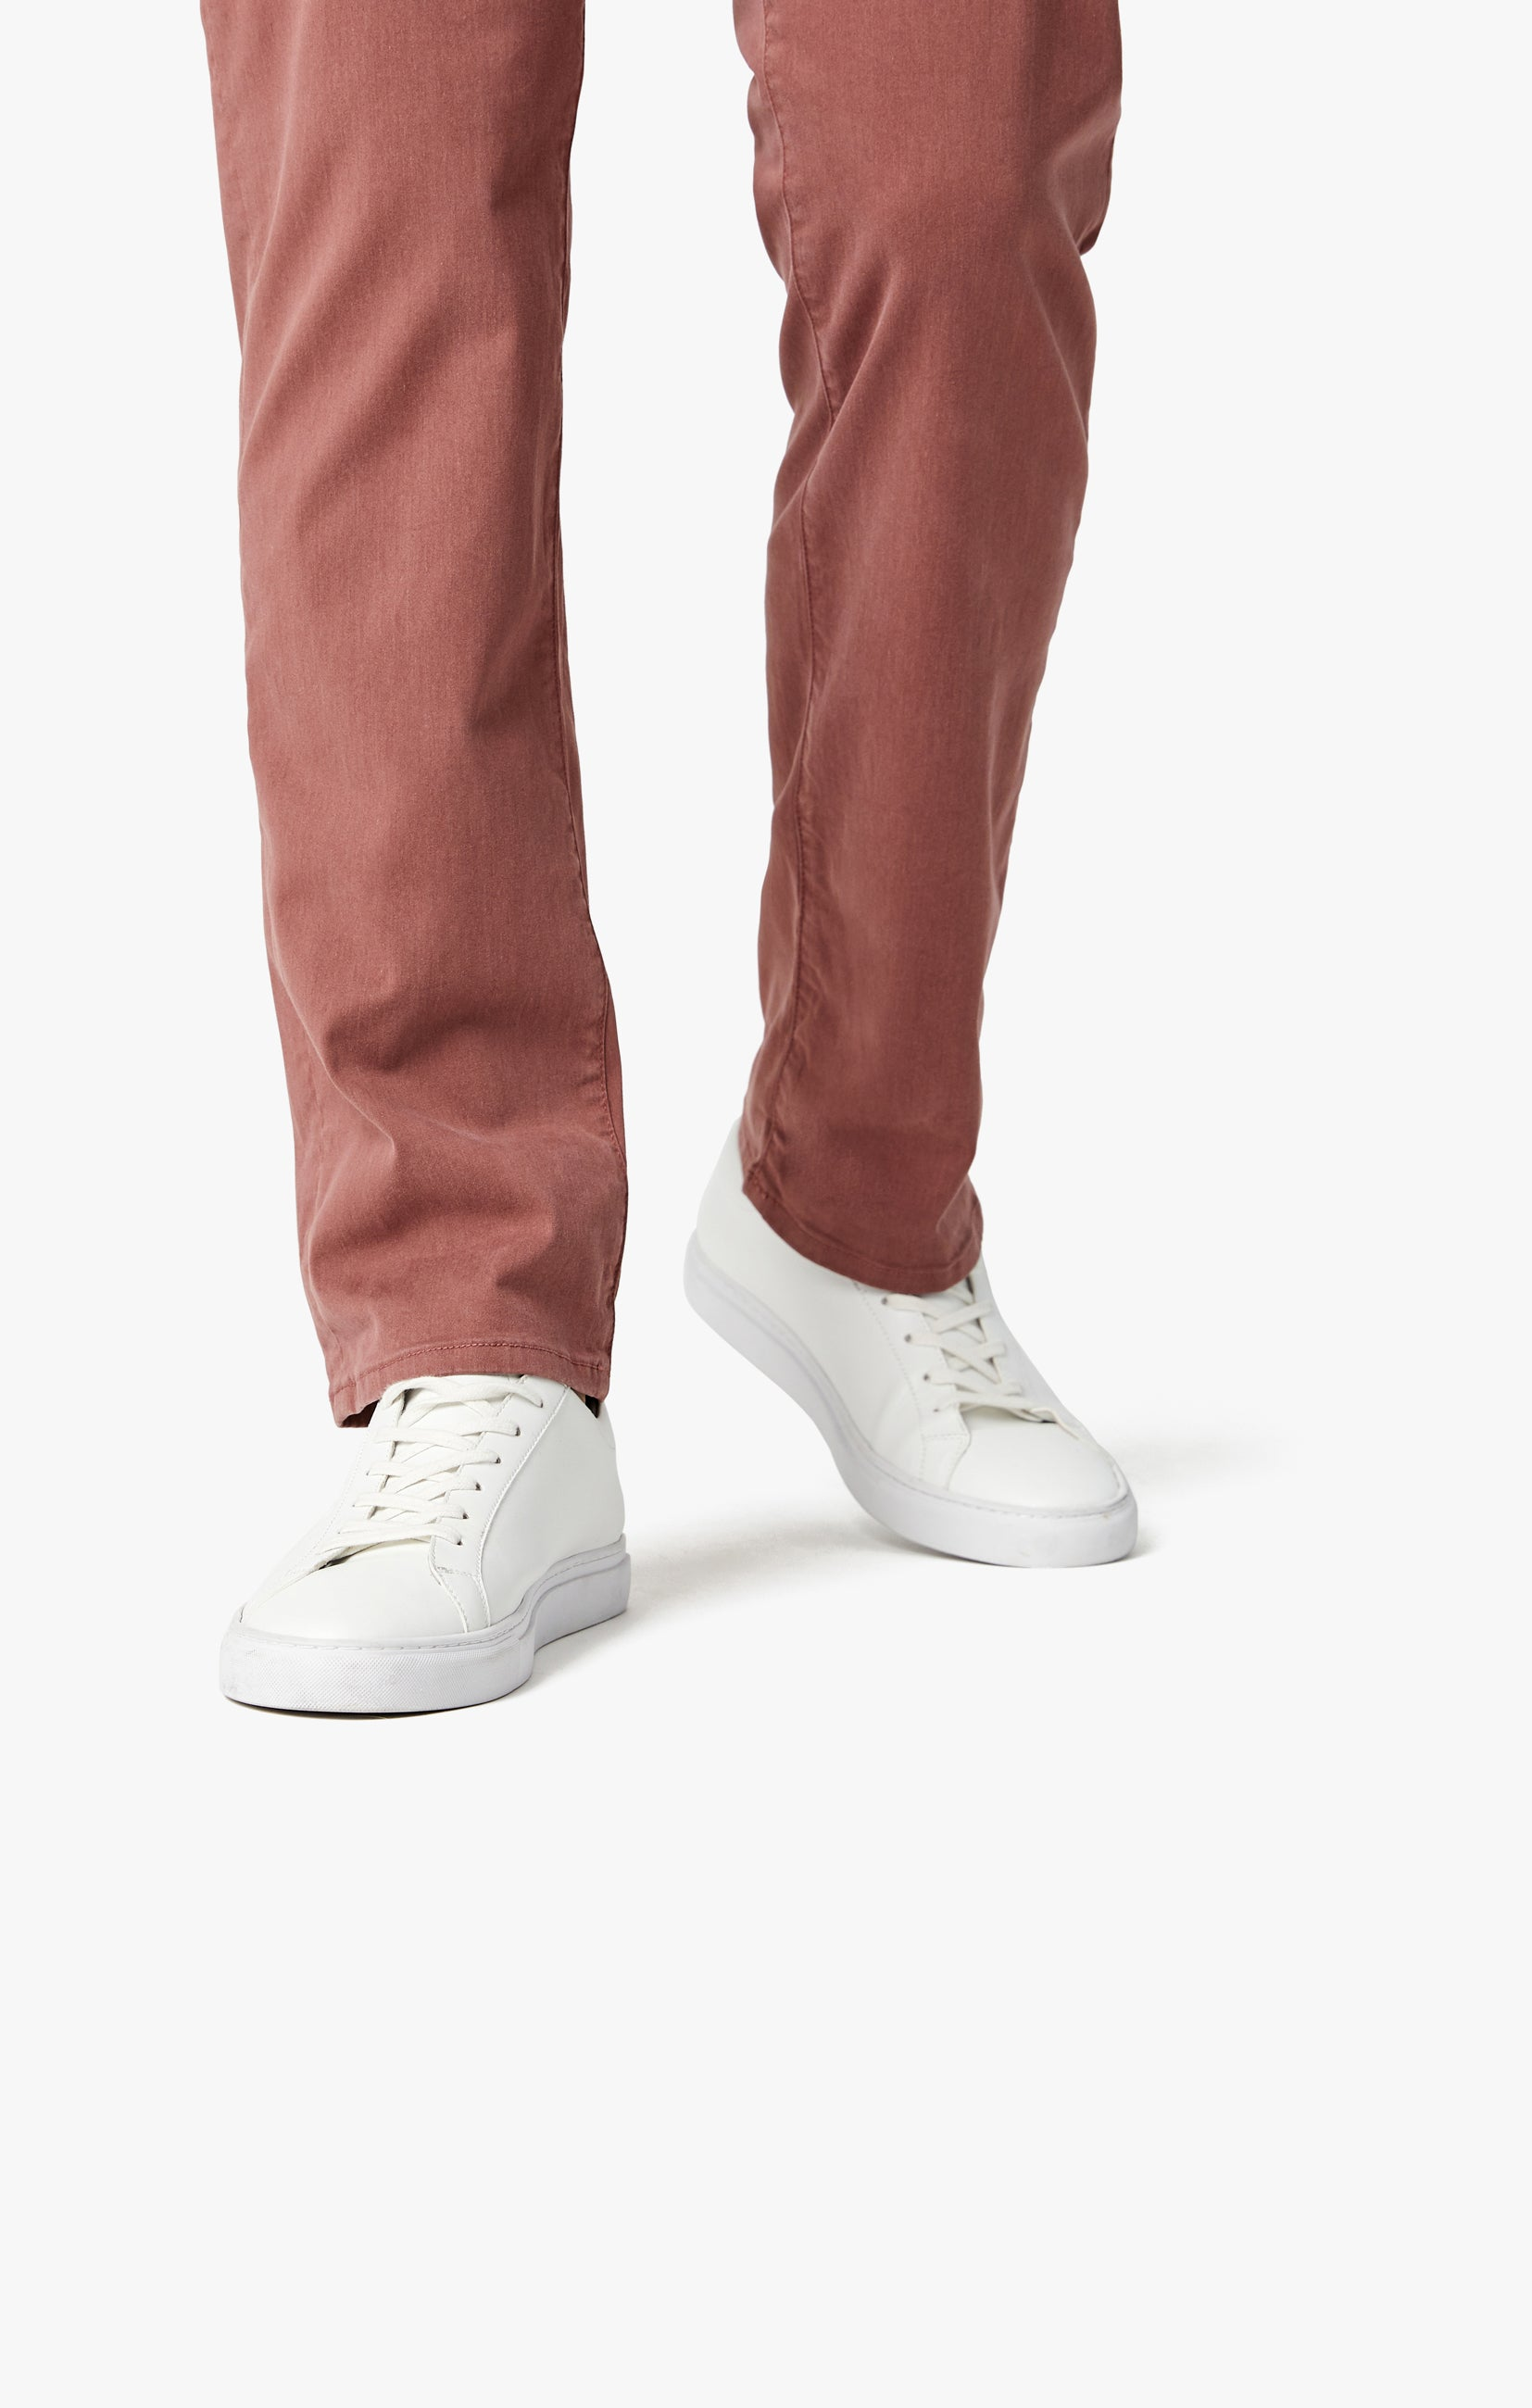 Courage Straight Leg Pants in Berry Twill Image 8